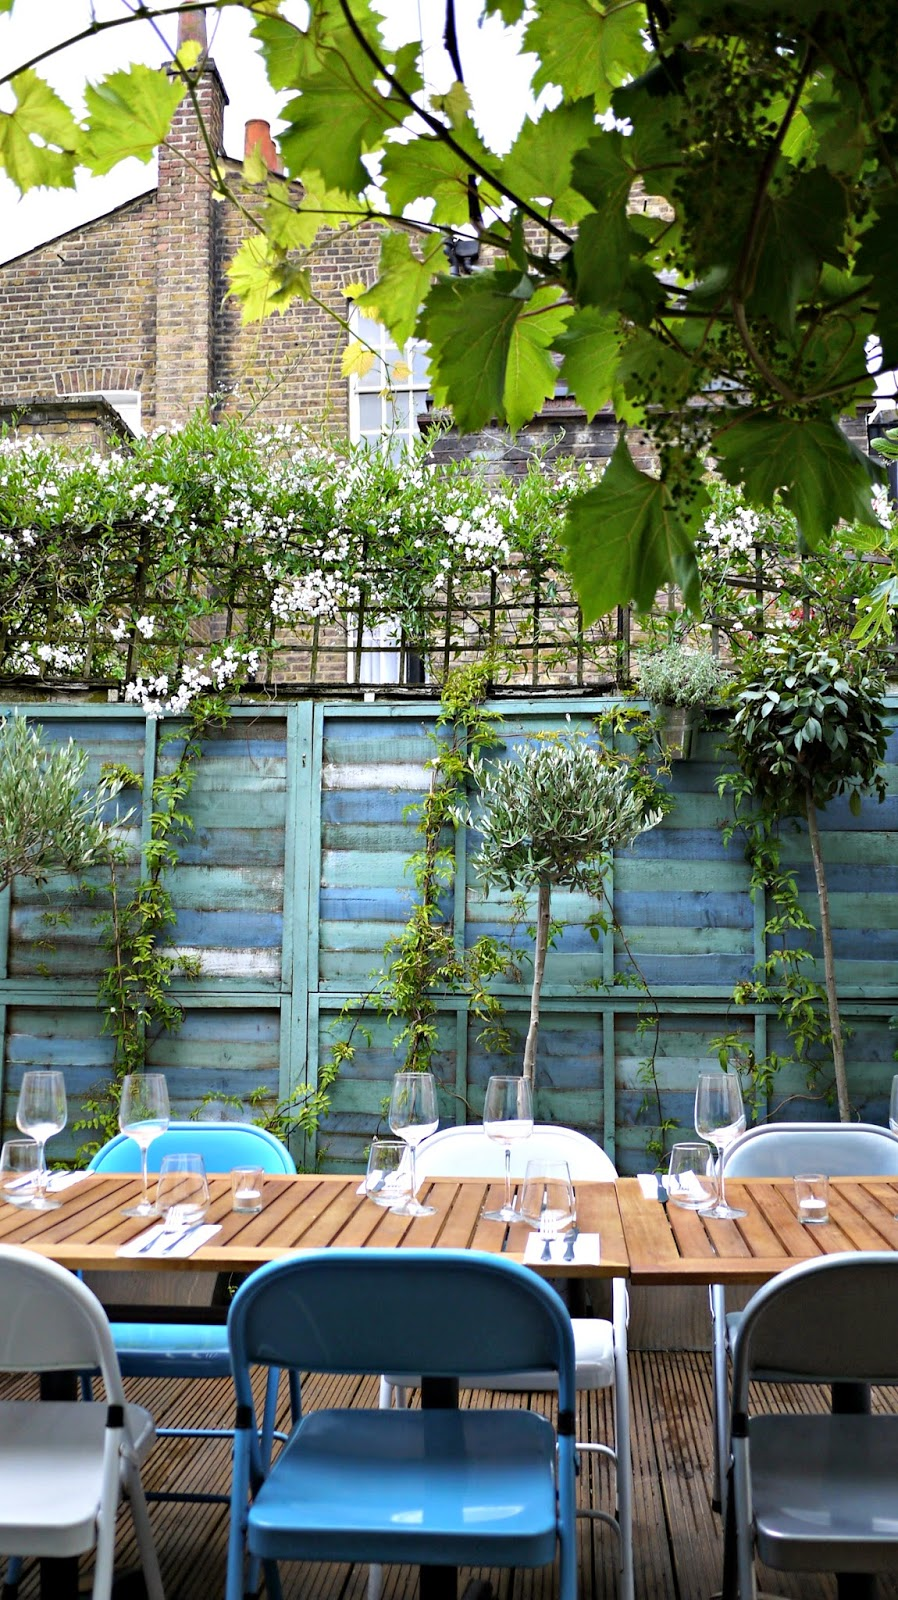 Mazi Notting hill garden